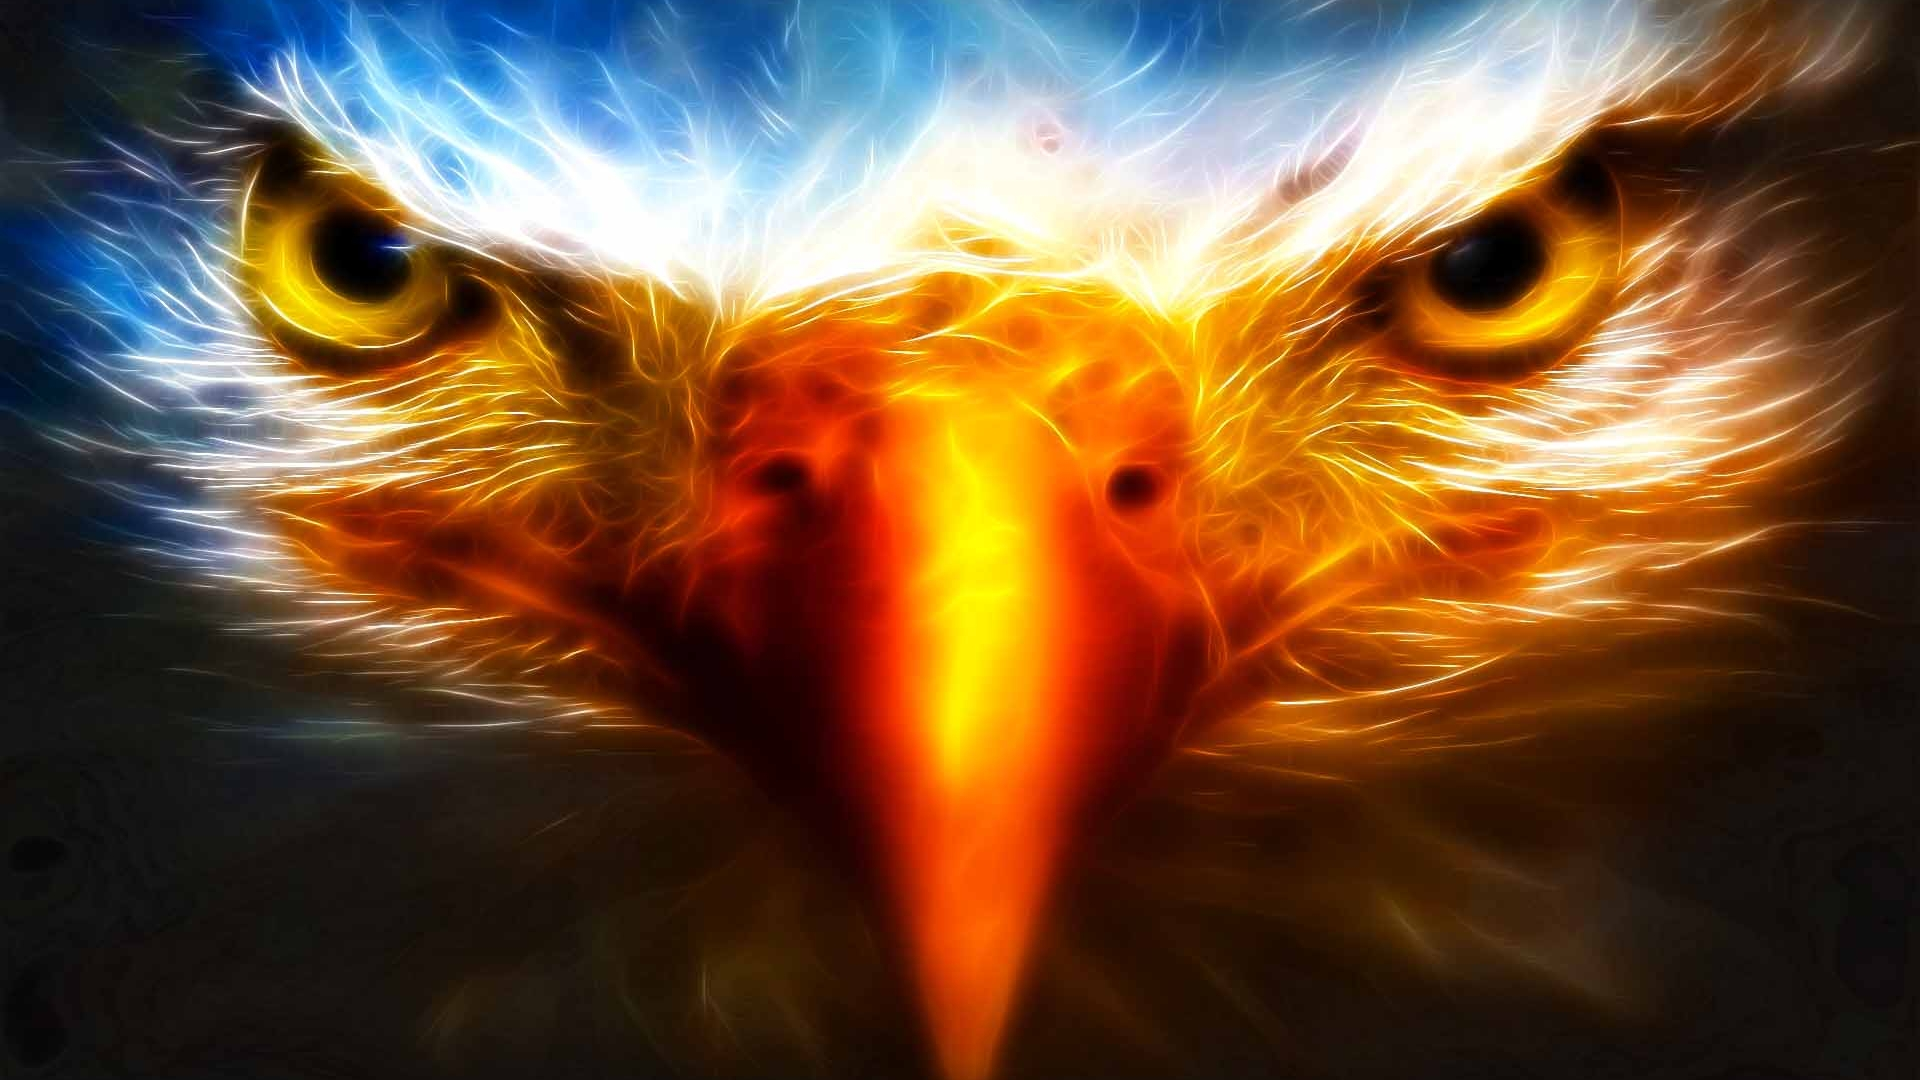 eagle 3d cool hd wallpapers desktop background 1920x1080